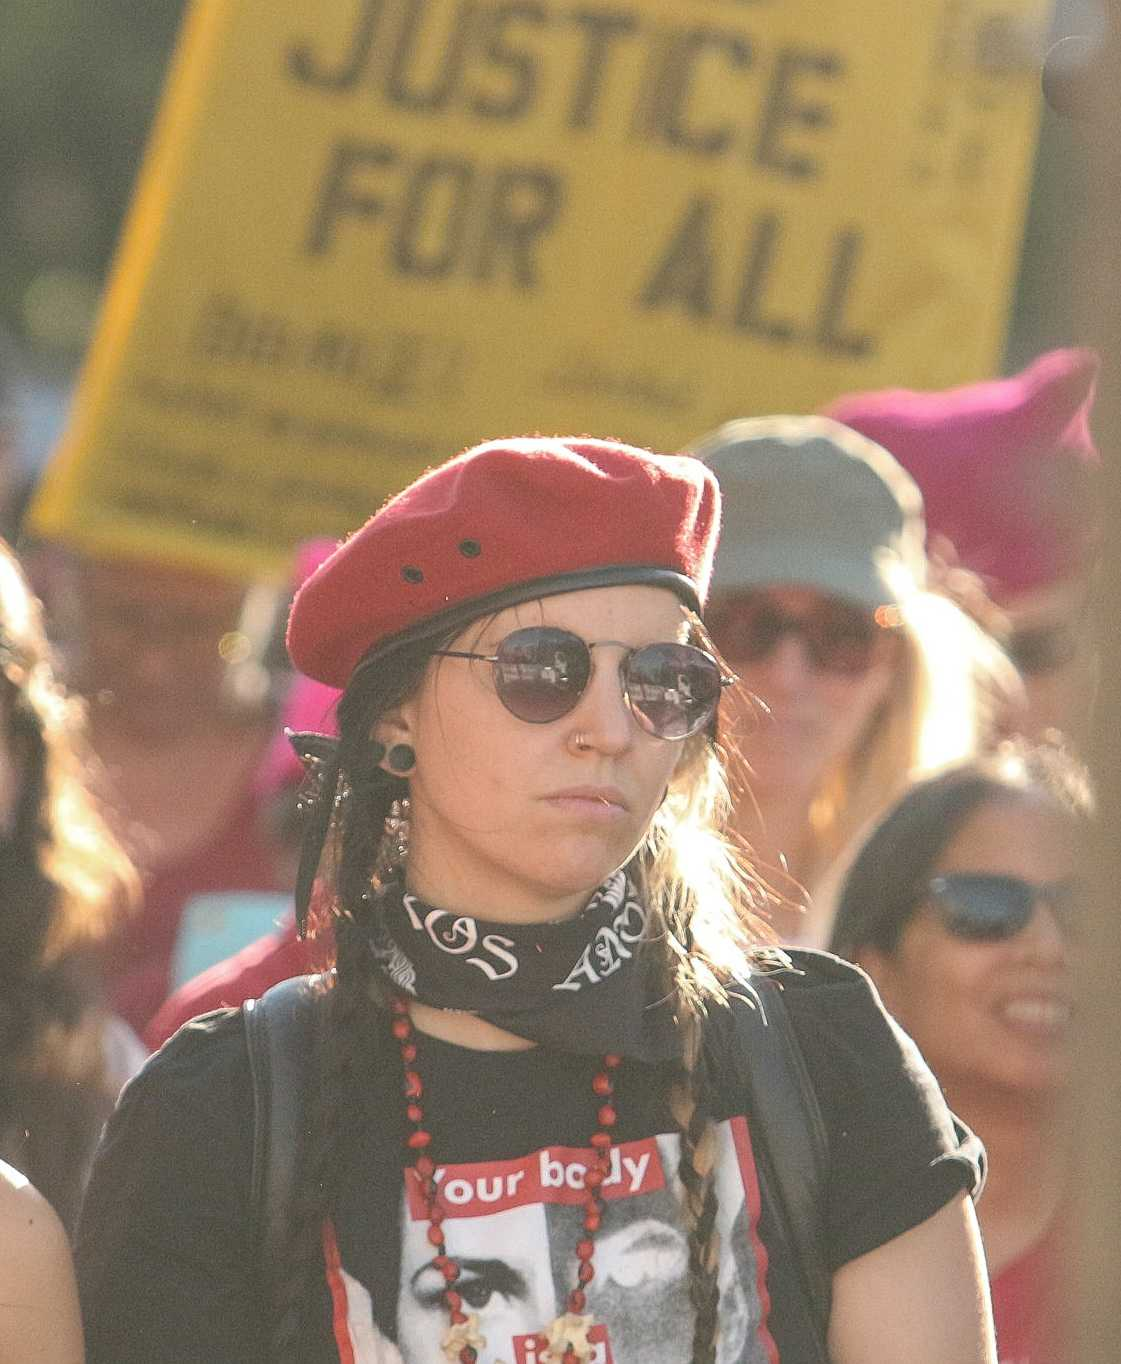 A member of the Women's strike listens to the speakers of the rally wearing red as a stand in solidarity in Downtown Los Angeles, California on March 8th (photo by José Aguila)